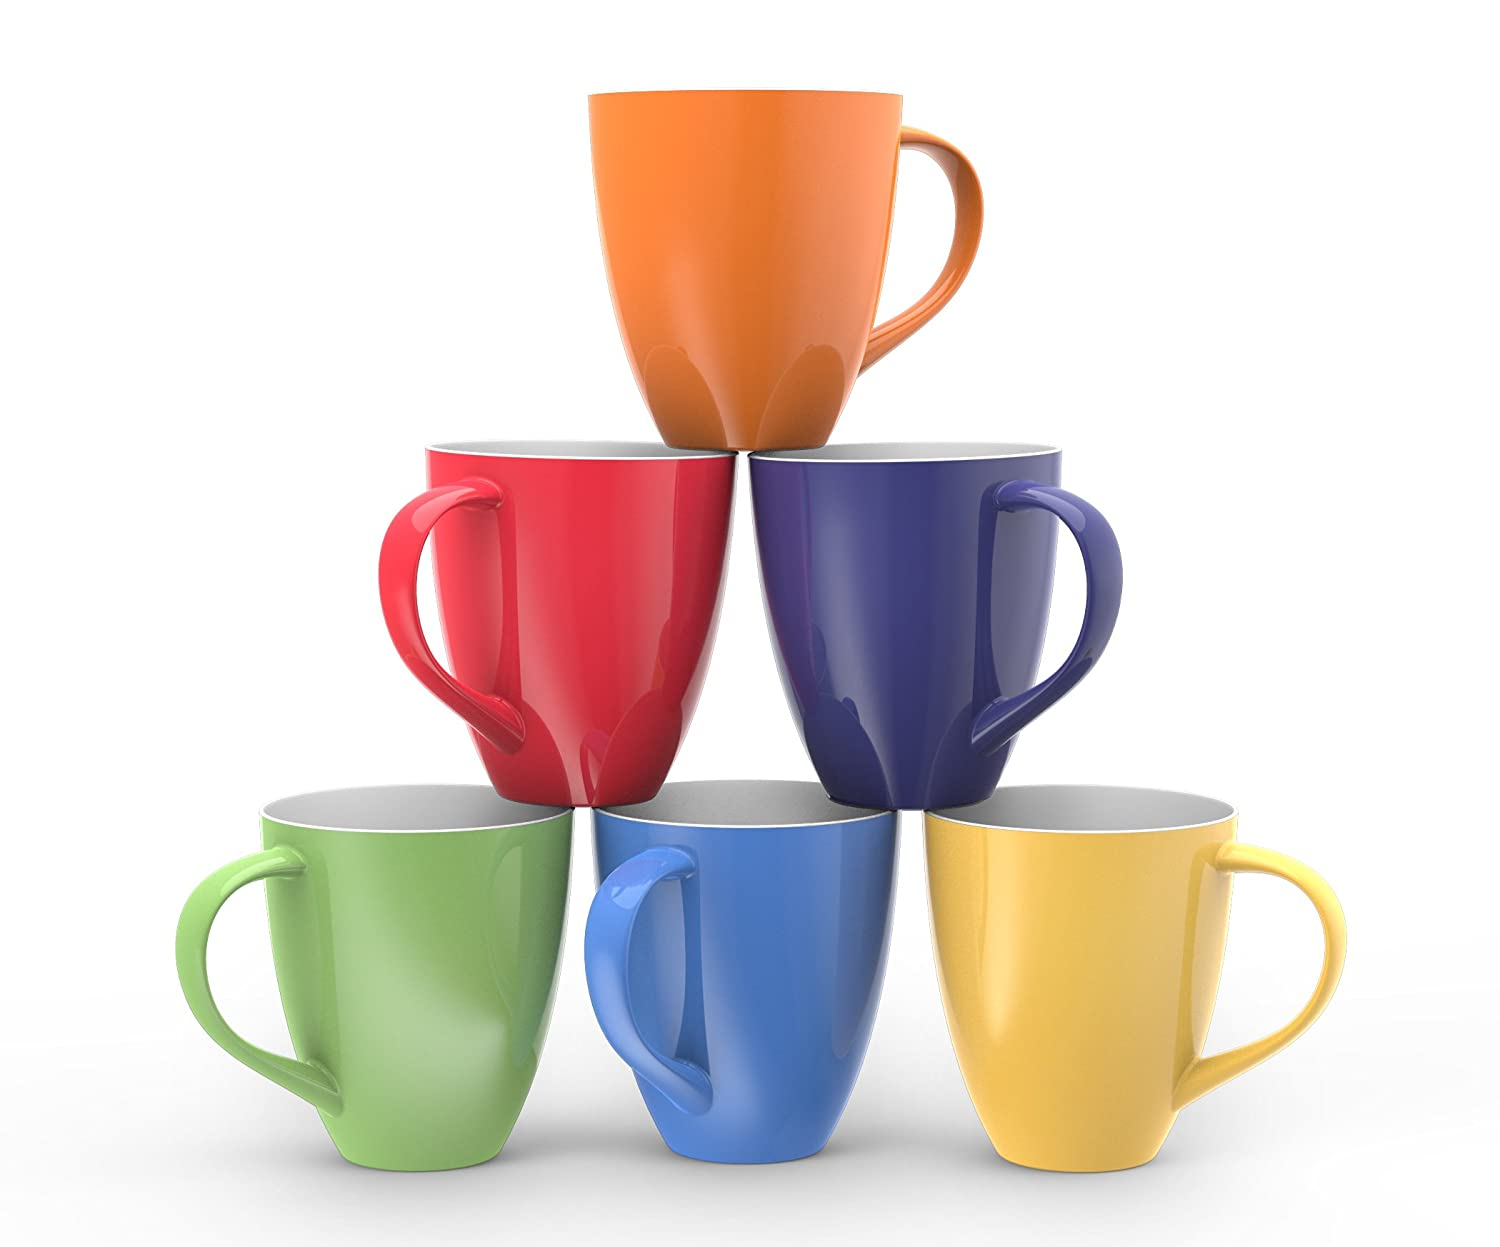 Francois et Mimi Large 16oz Ceramic Coffee Mugs, Solid Colorful, Set of 6